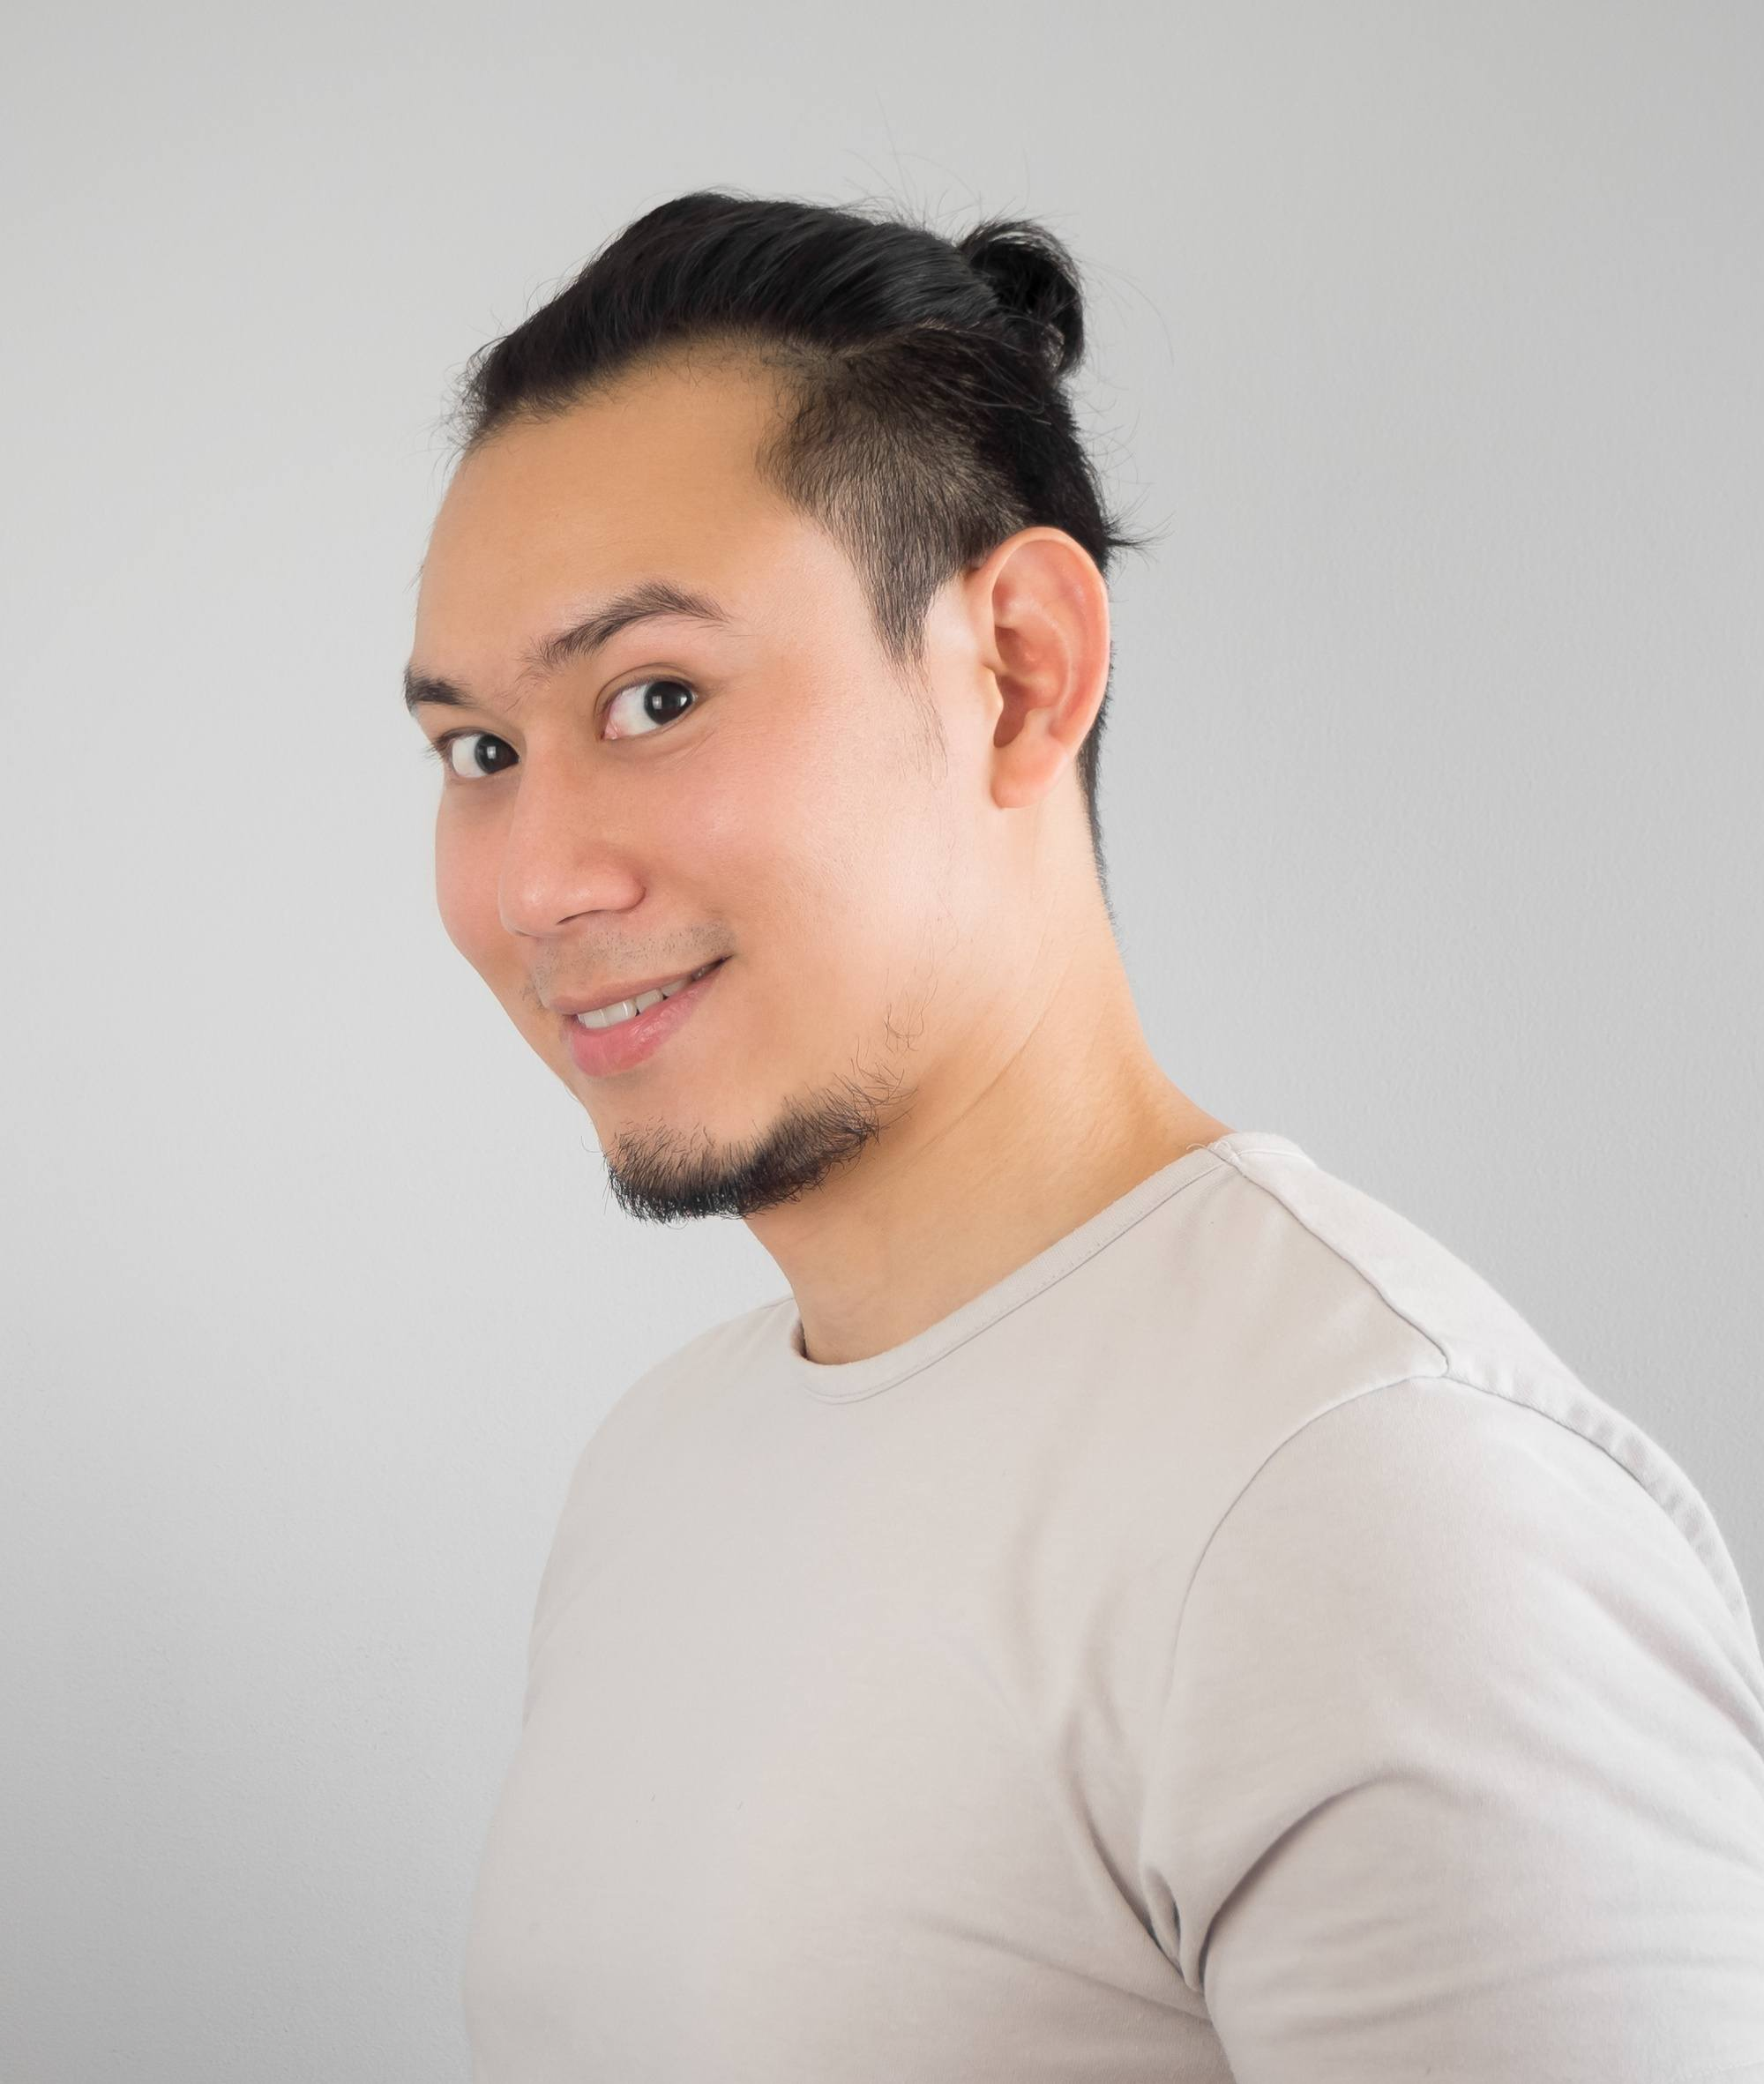 Asian man bun: Asian man smiling with black hair in a mini bun wearing a gray shirt